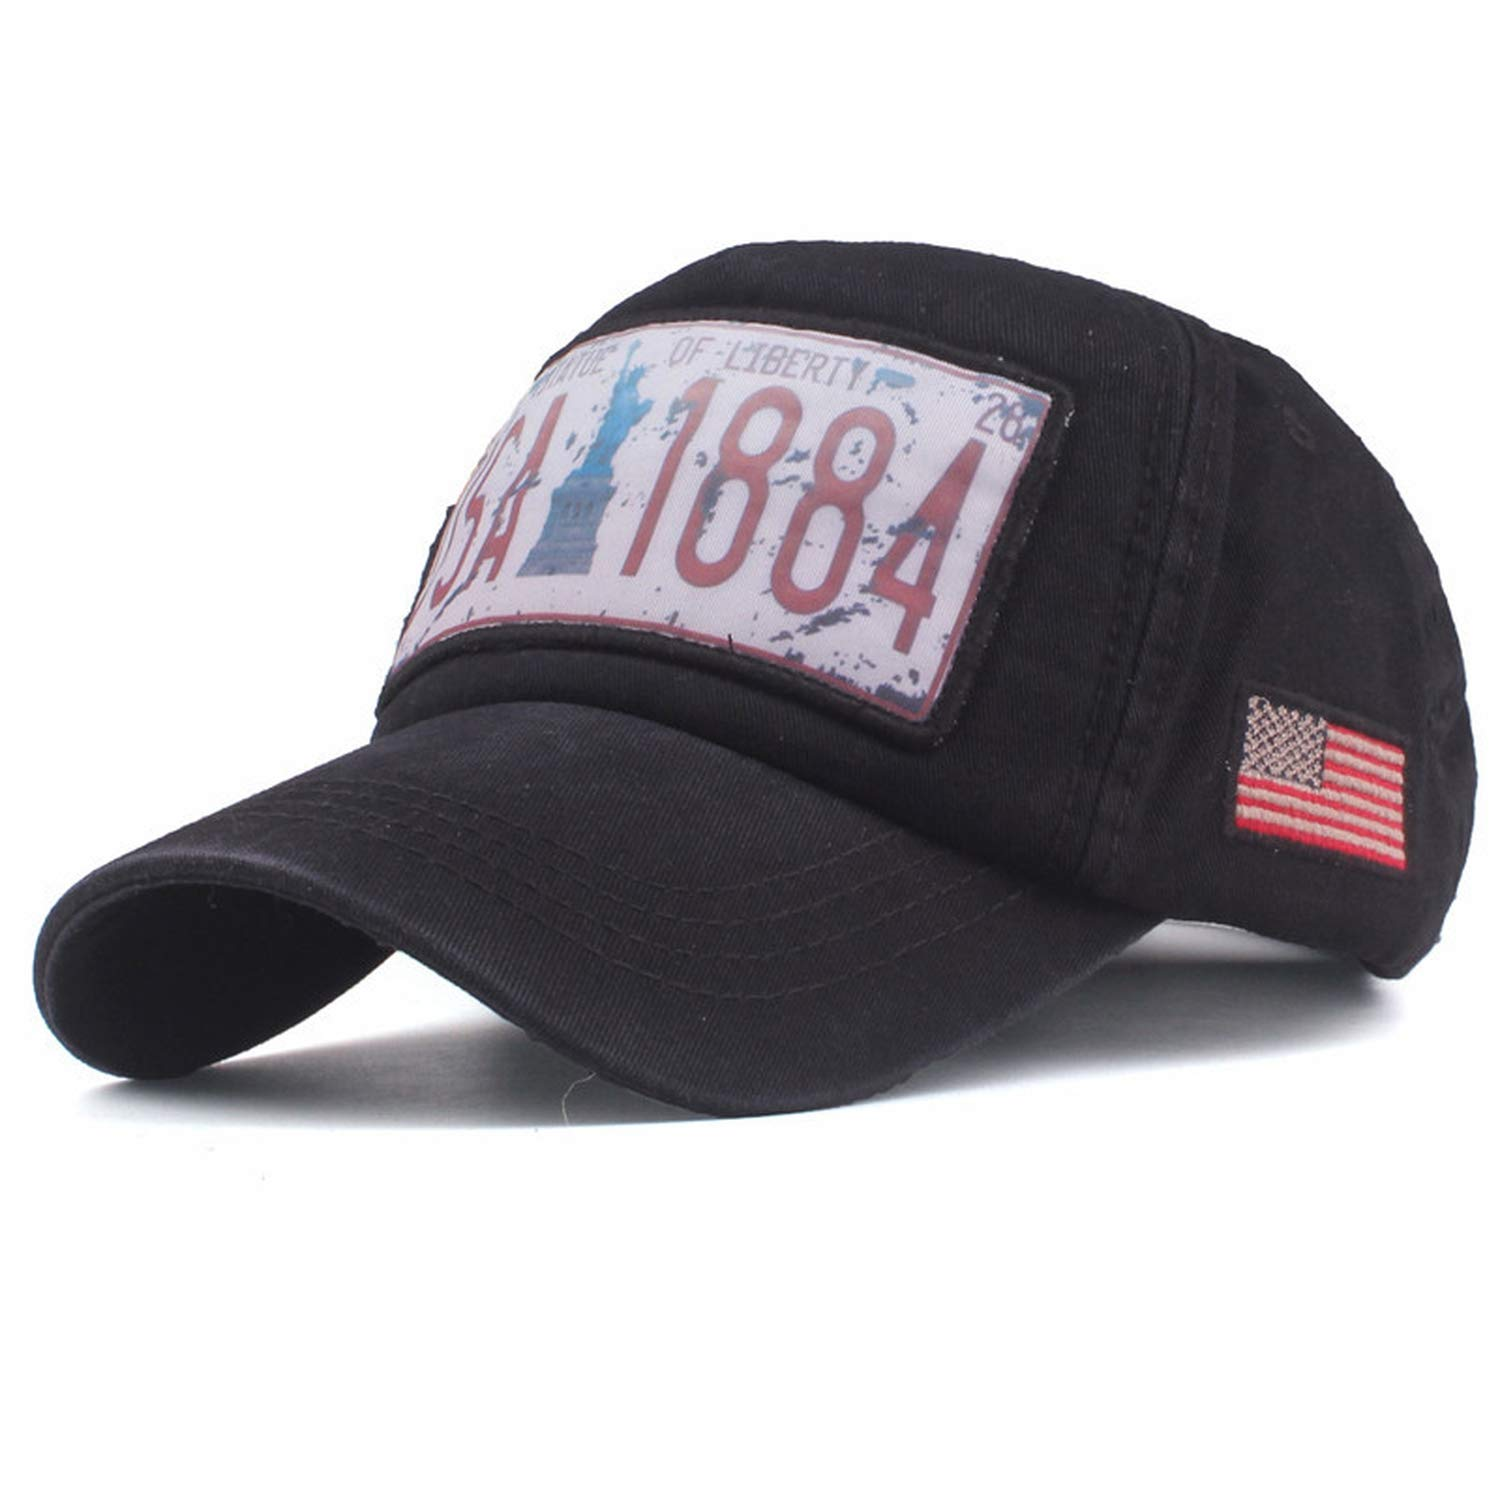 2019 New Cotton Baseball Cap Mens Hats Spring Summer Hat for Men Women Hats in The Middle East